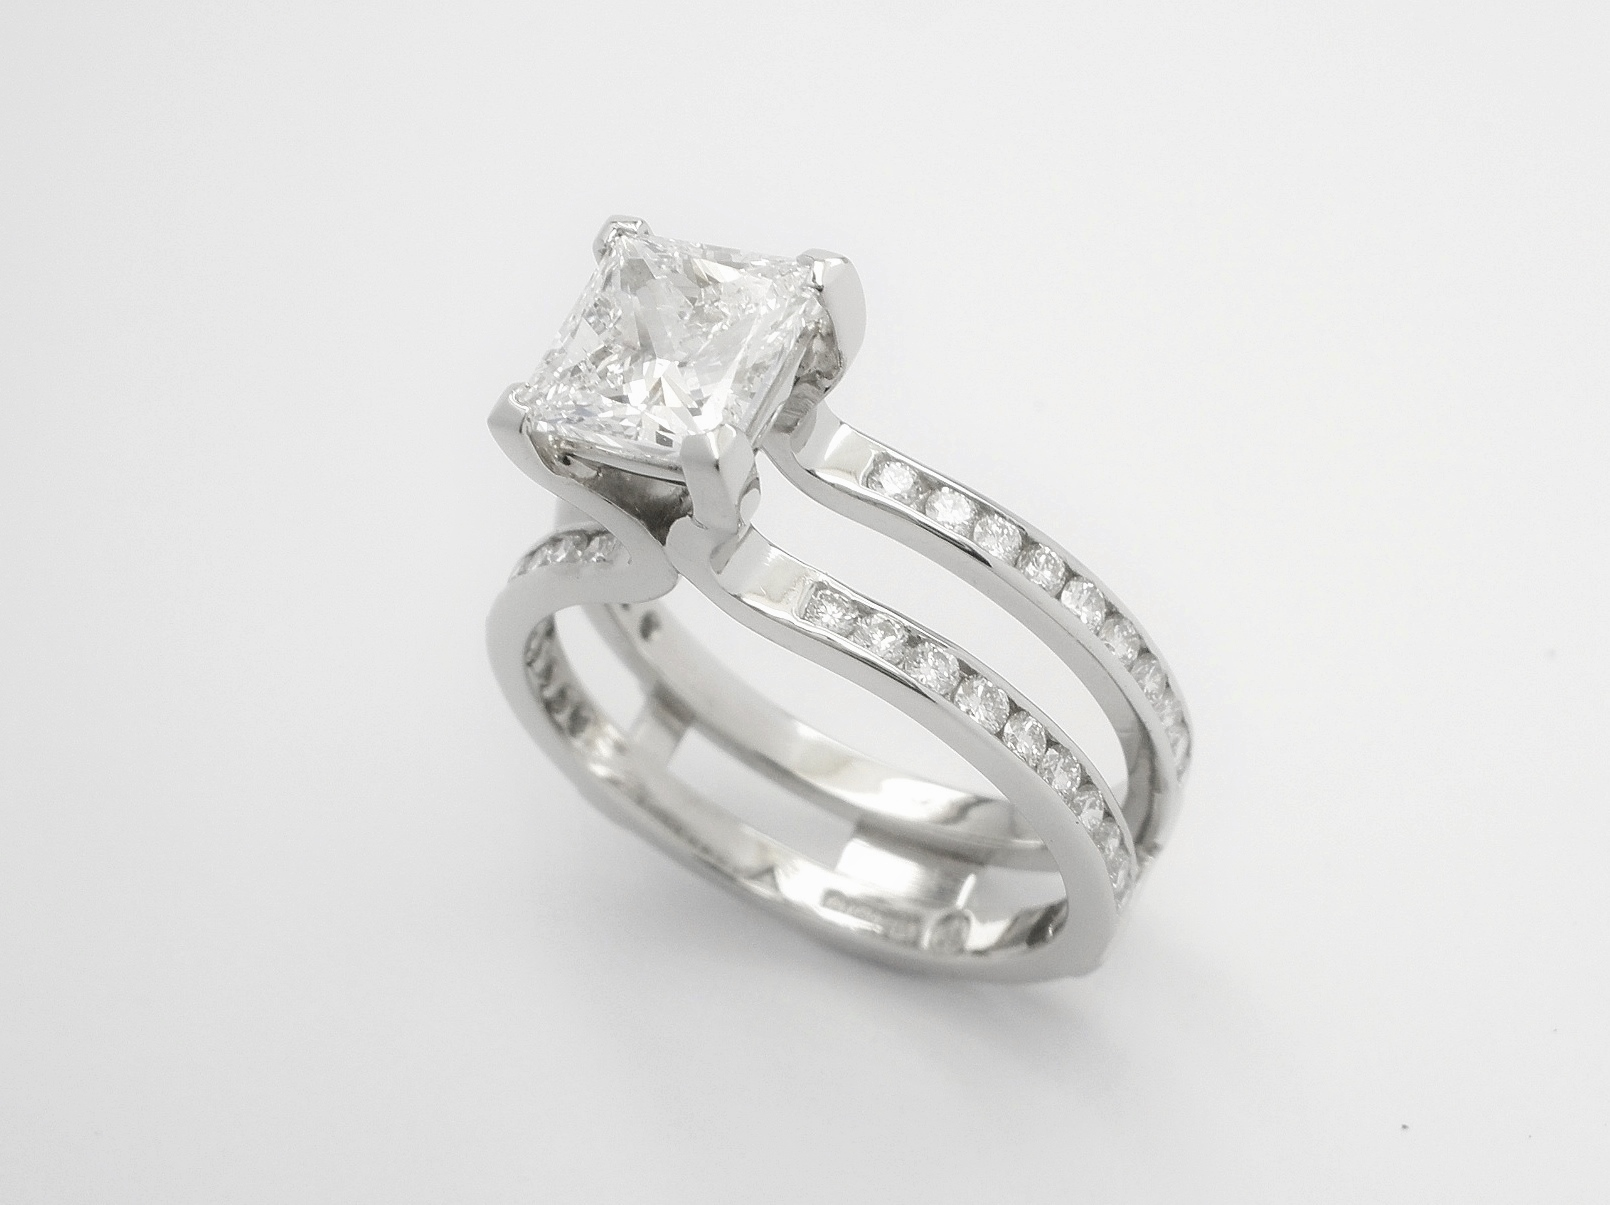 Single stone 1.19ct.'D' colour princess cut diamond 'Embrace' ring set in platinum with round brilliant cut diamonds set in twin shanks. View with wedding ring in shaped wedding ring